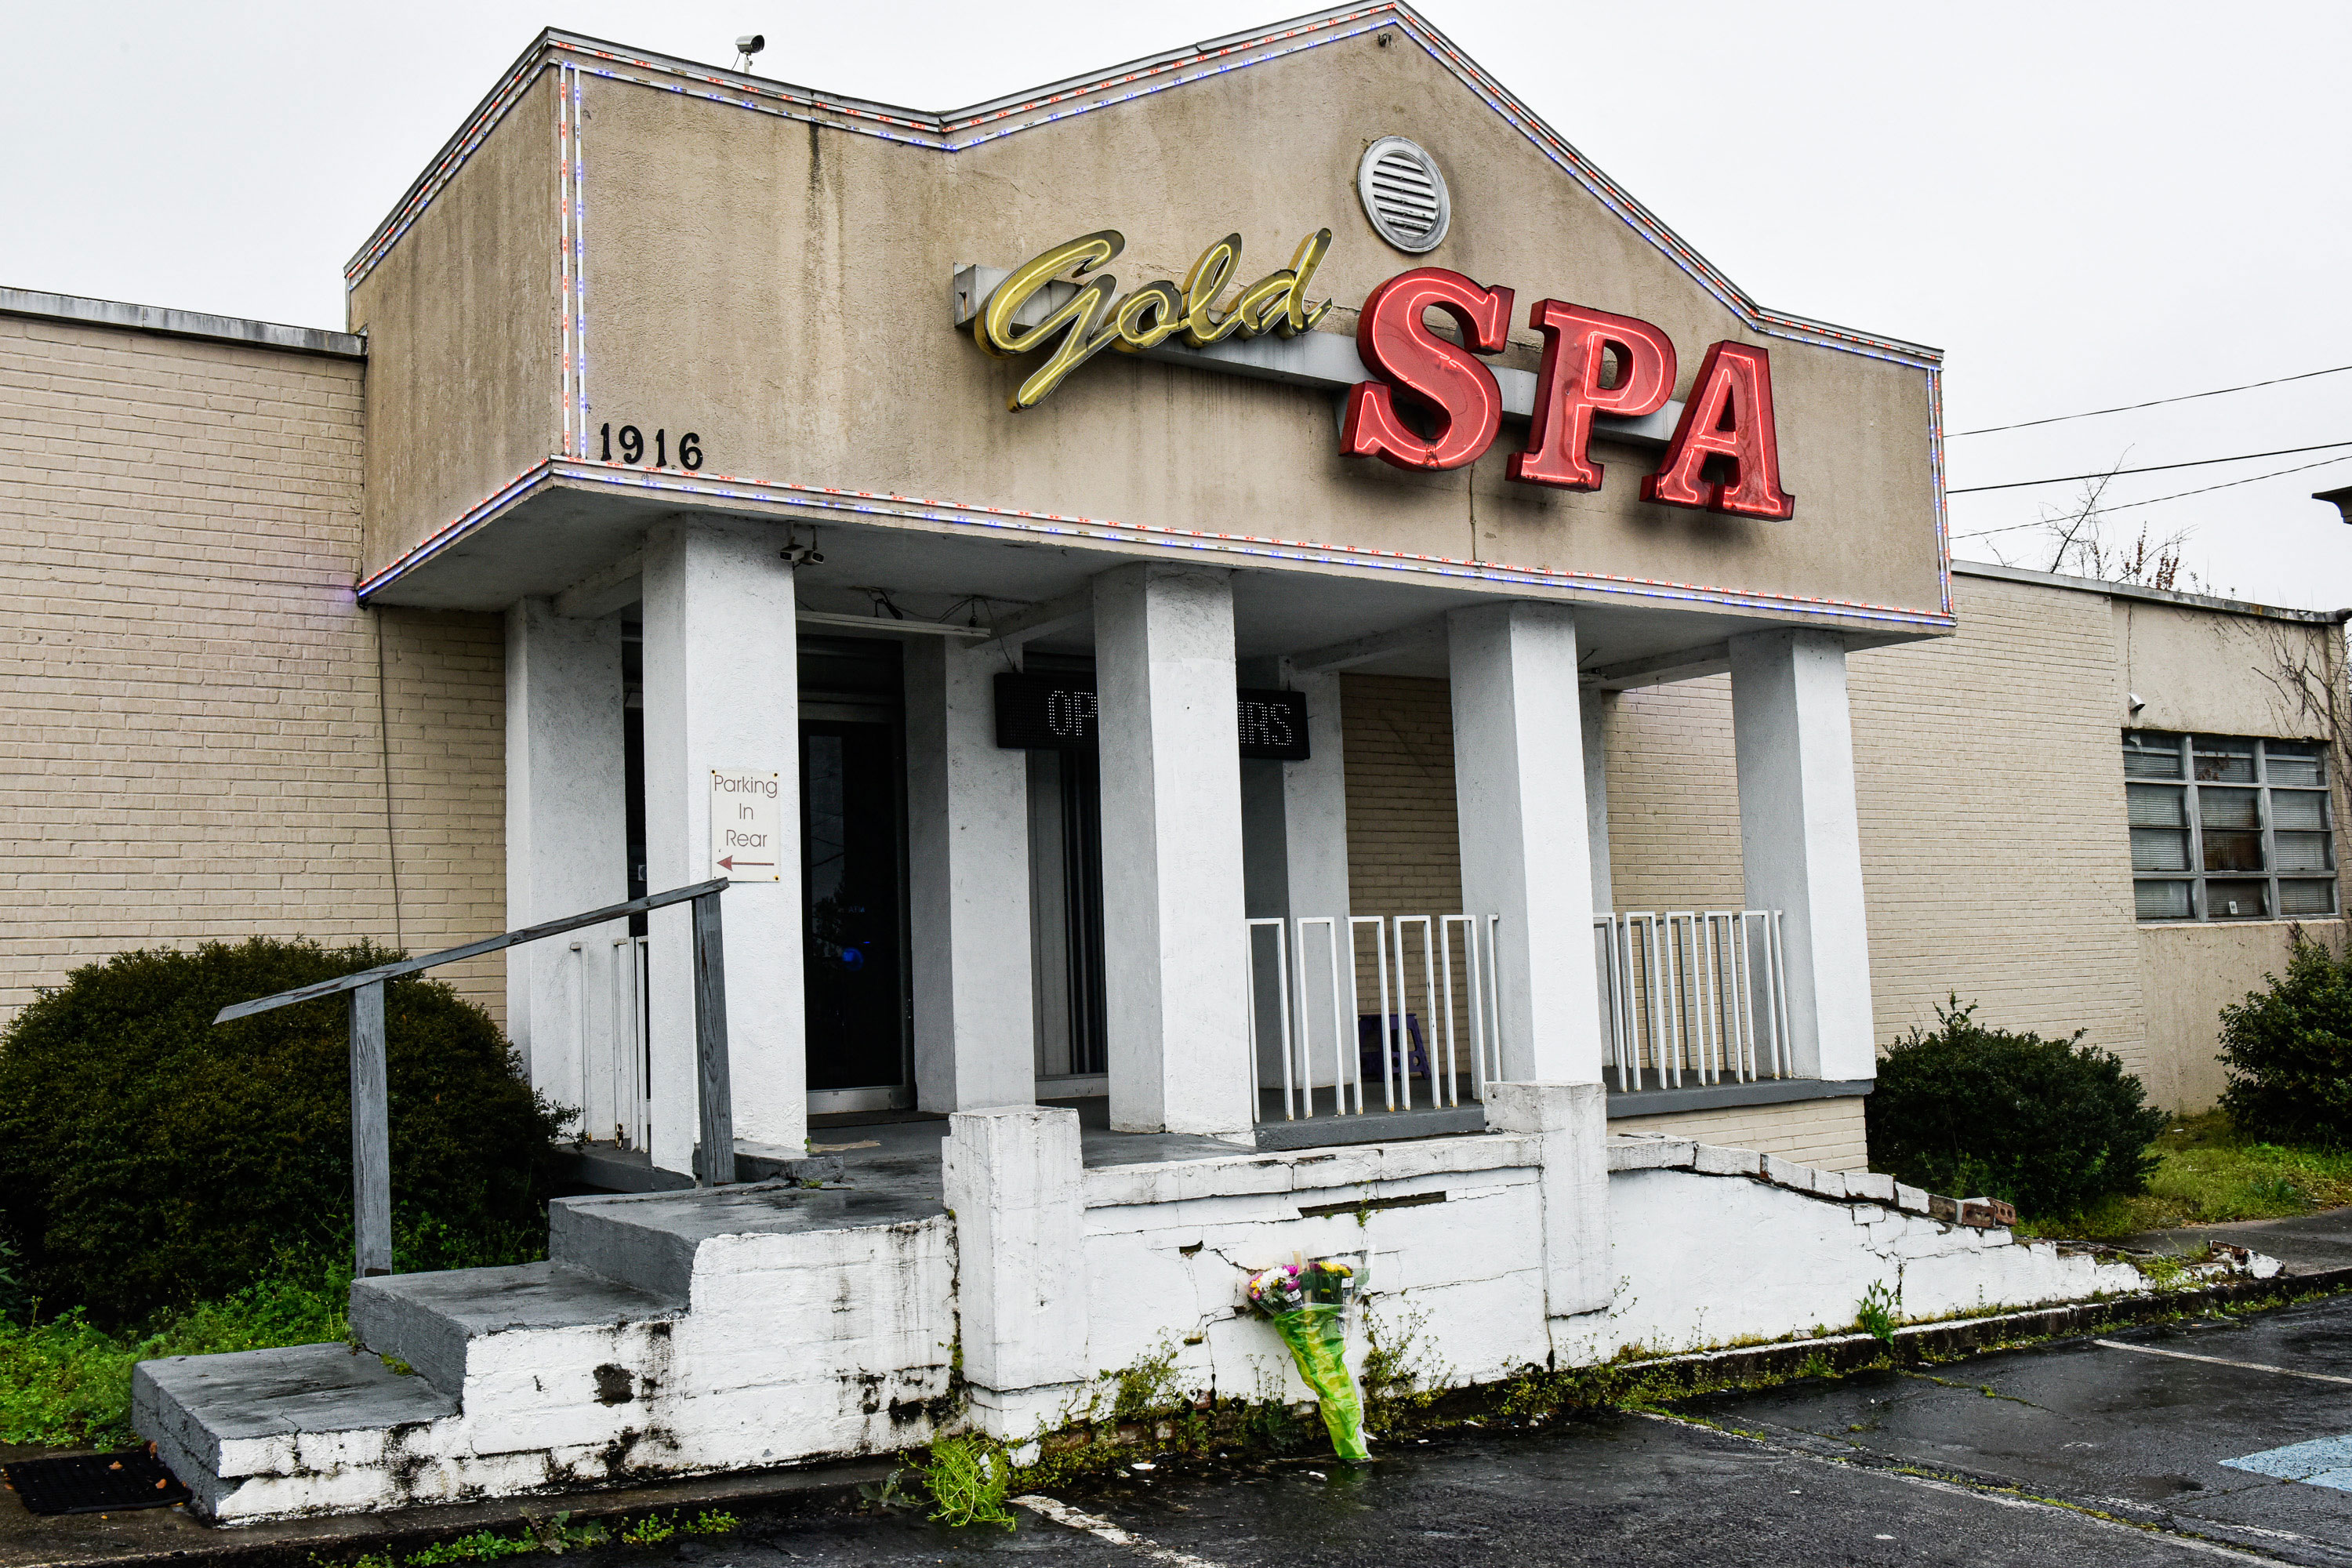 Flowers are seen at the entrance of Gold Spa in Atlanta on March 17.